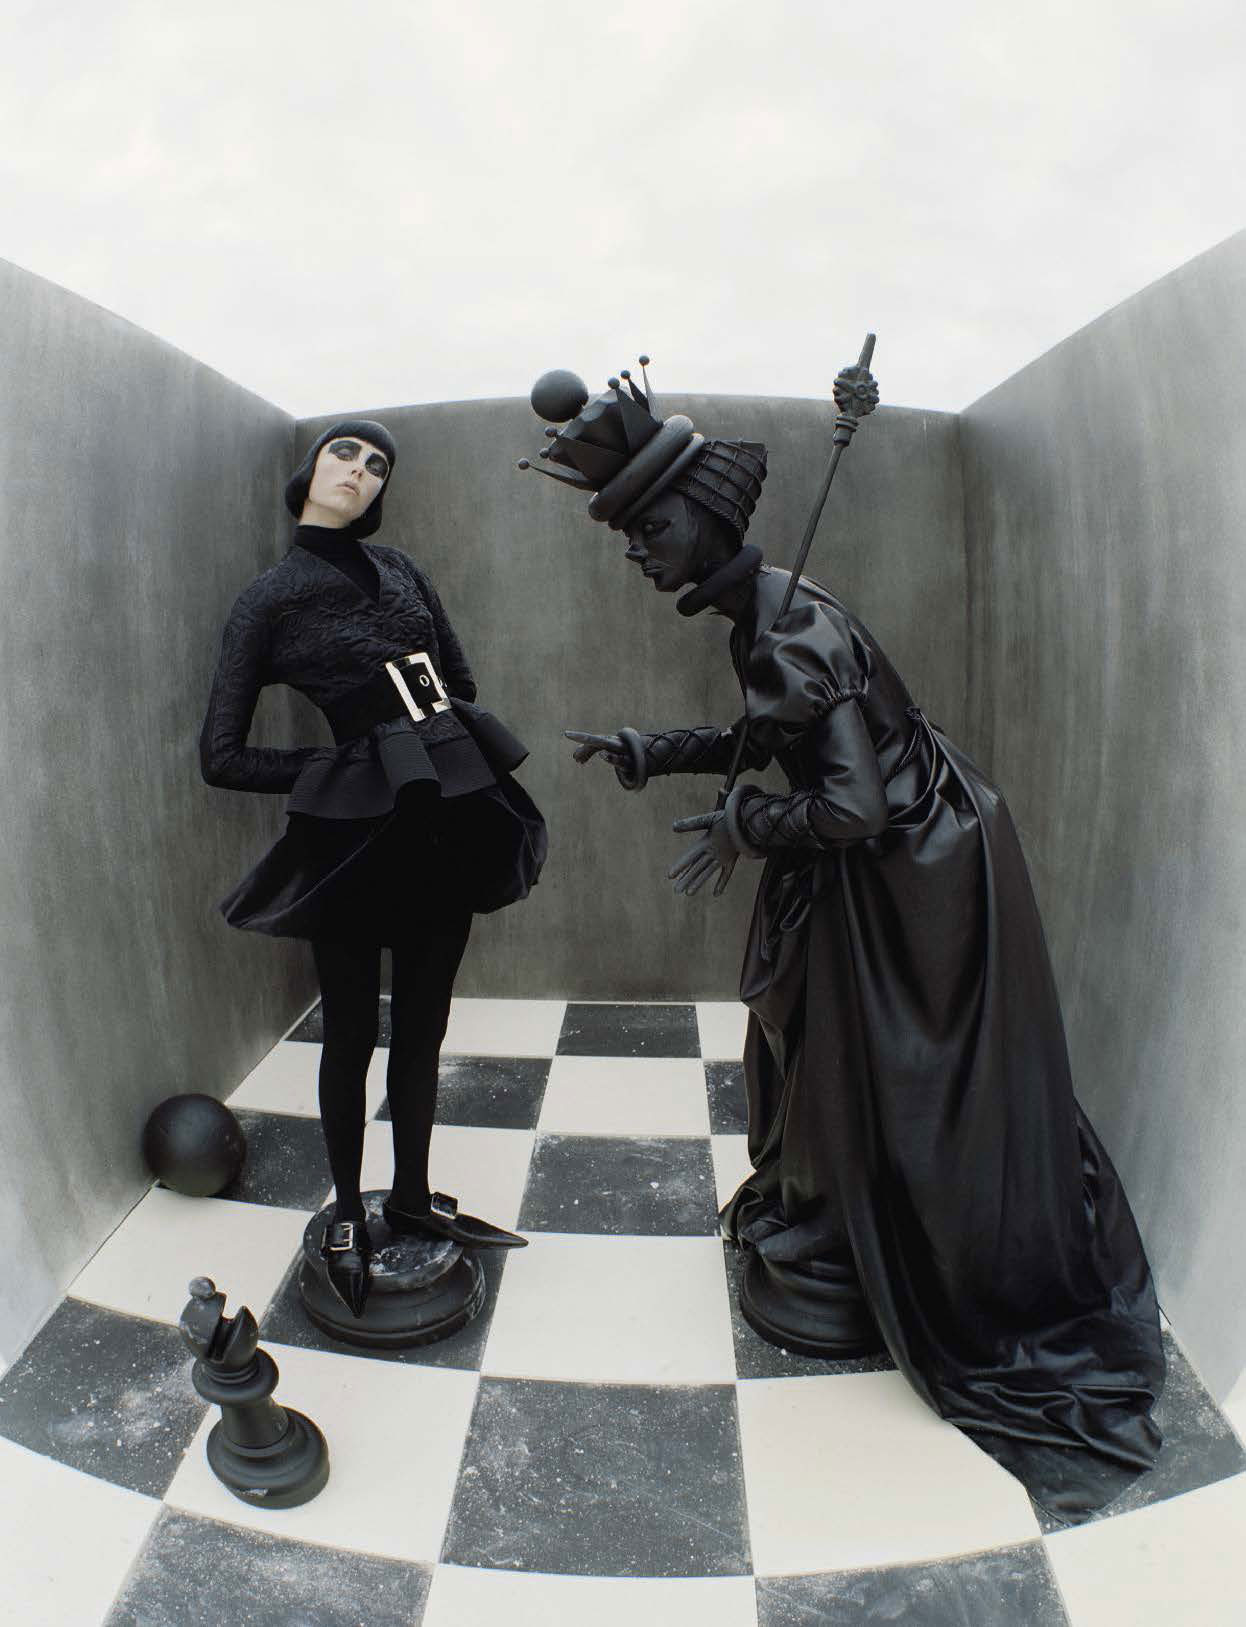 Check-Mate byCheck-Mate by Tim Walker for Vogue Italia | YellowtraceT Walker for Vogue Italia | Yellowtrace